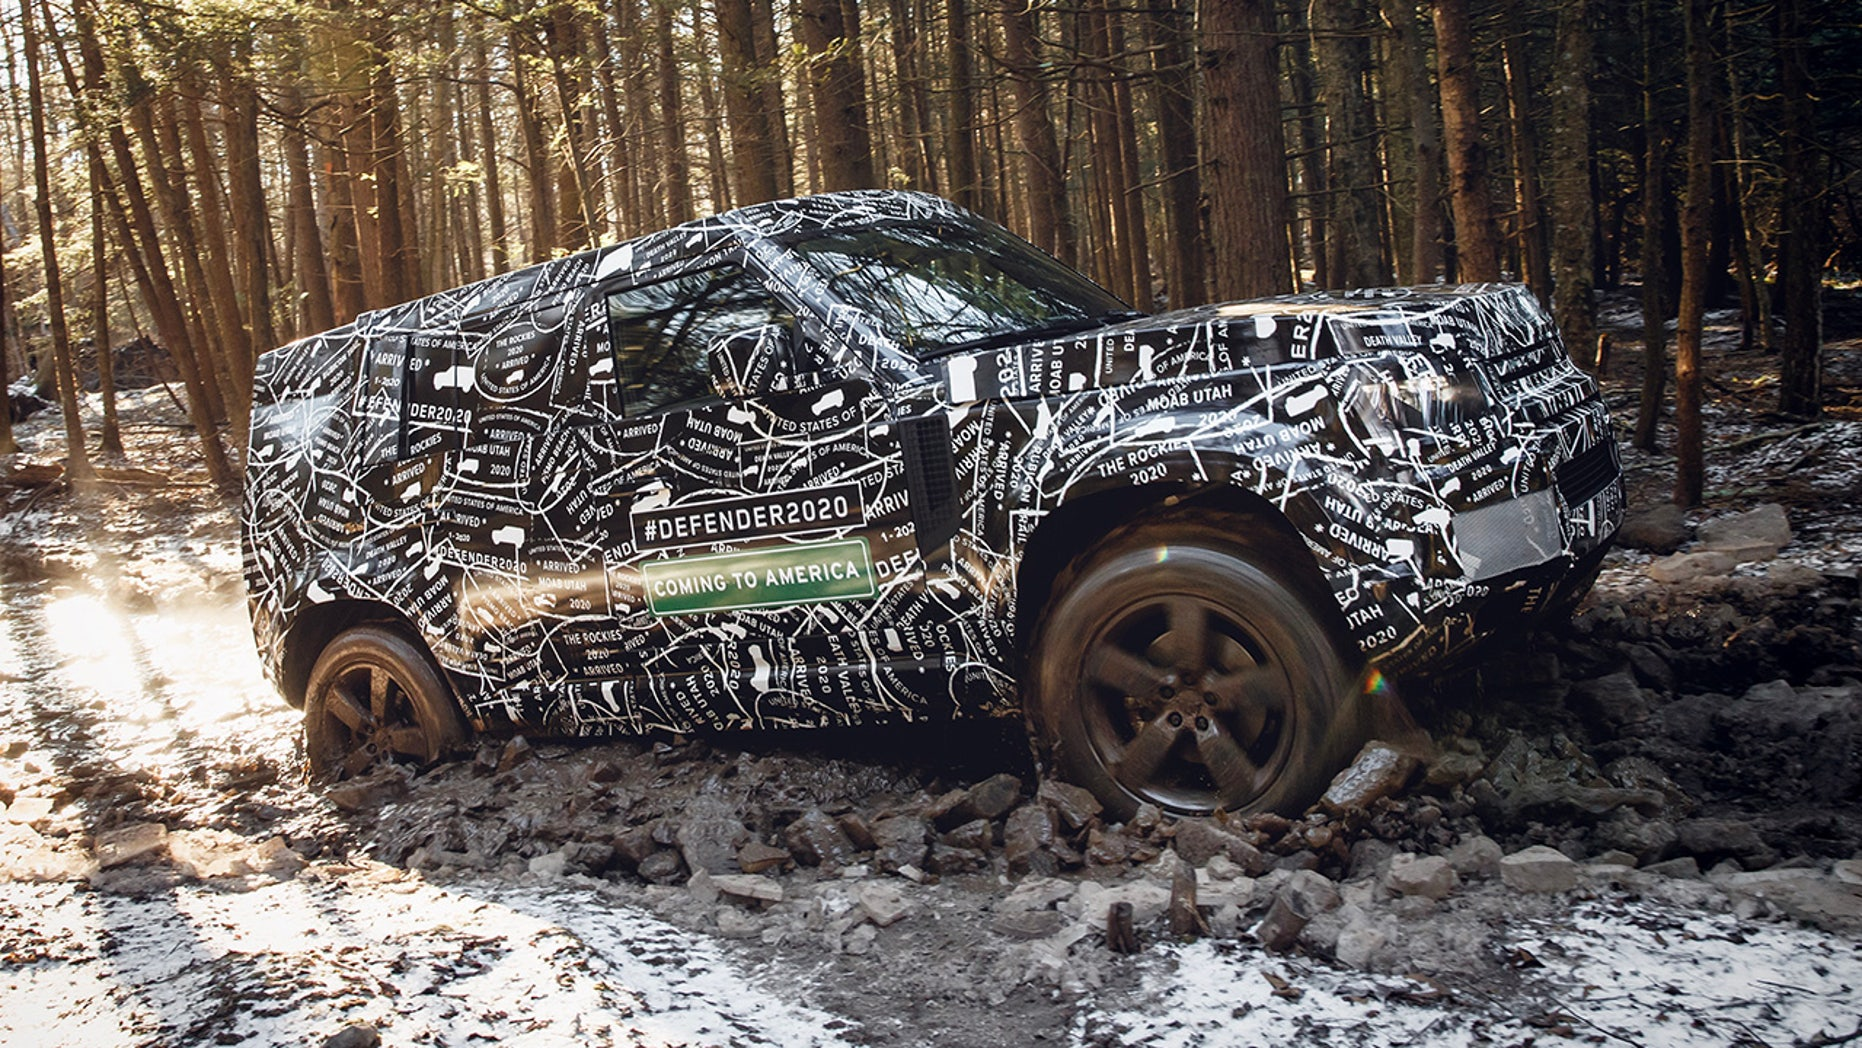 Volkswagen is preparing a competitor to the Land Rover Defender